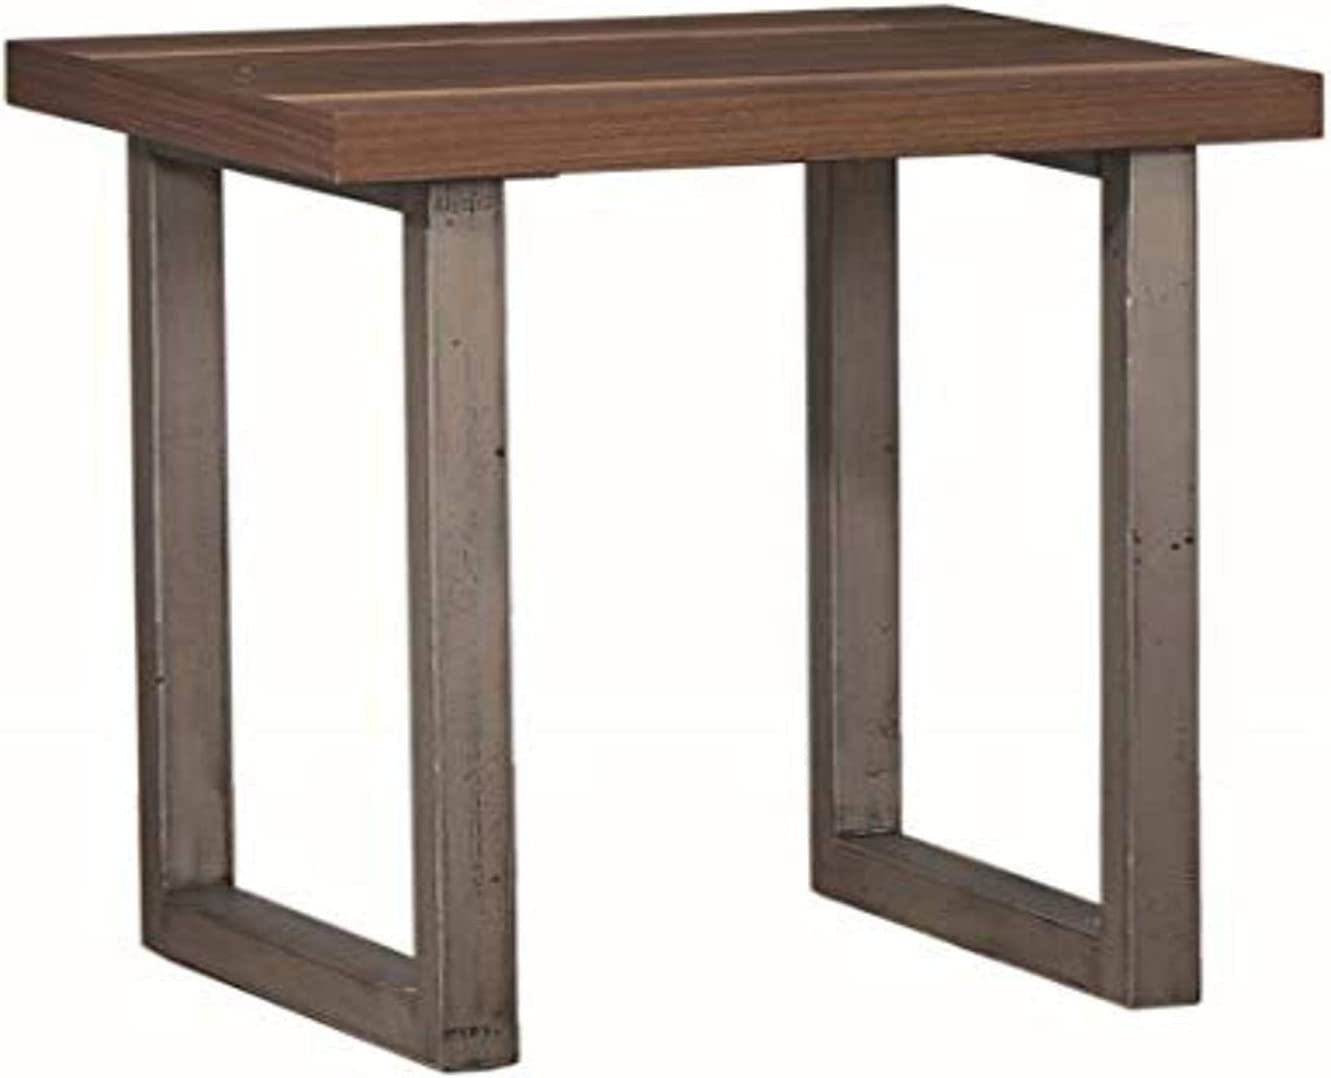 Coaster Home Furnishings End Table, Walnut/Espresso